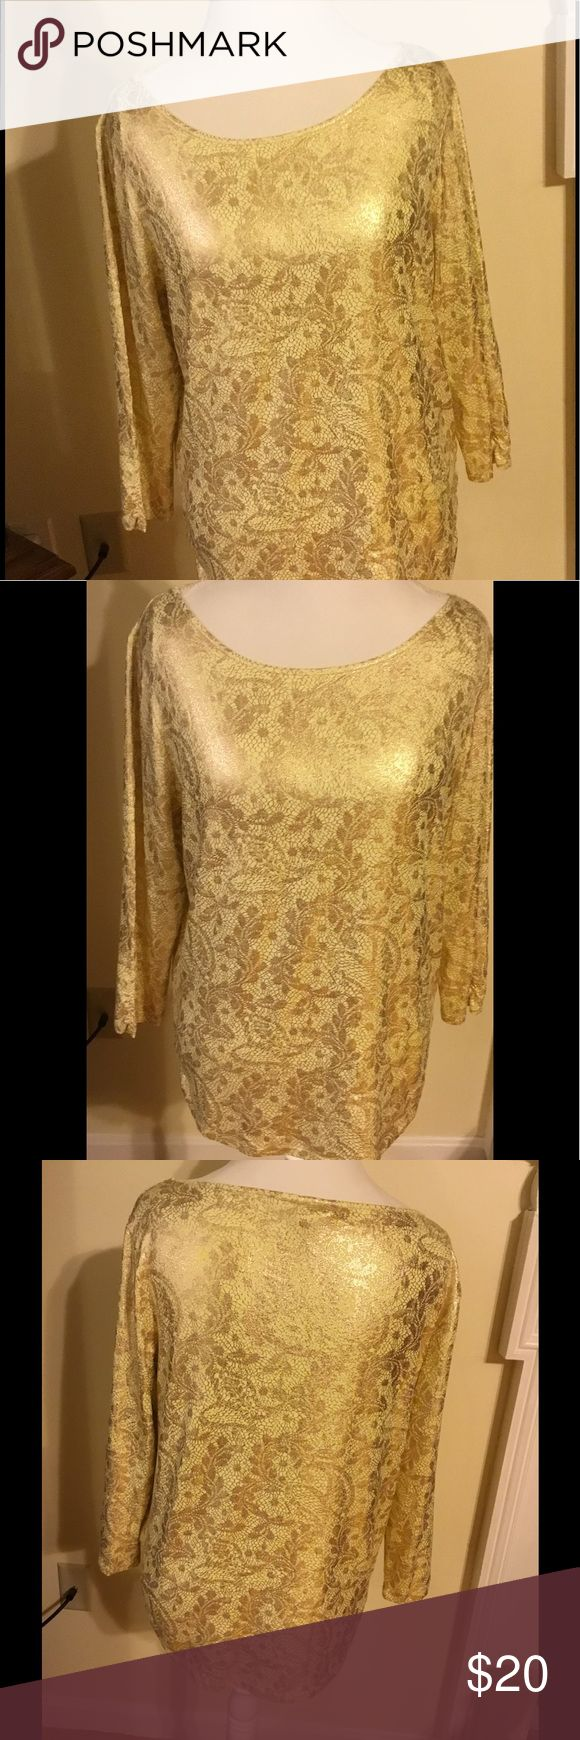 New Chico's Gold Long Sleeve Top (2) 12-14 Attractive Chico's Long Sleeve Top Sz 2 (12/14). Gold foil/shimmer, soft feeling,and has Stretch to it. Beautiful top never worn just hung in closet. Chico's Tops